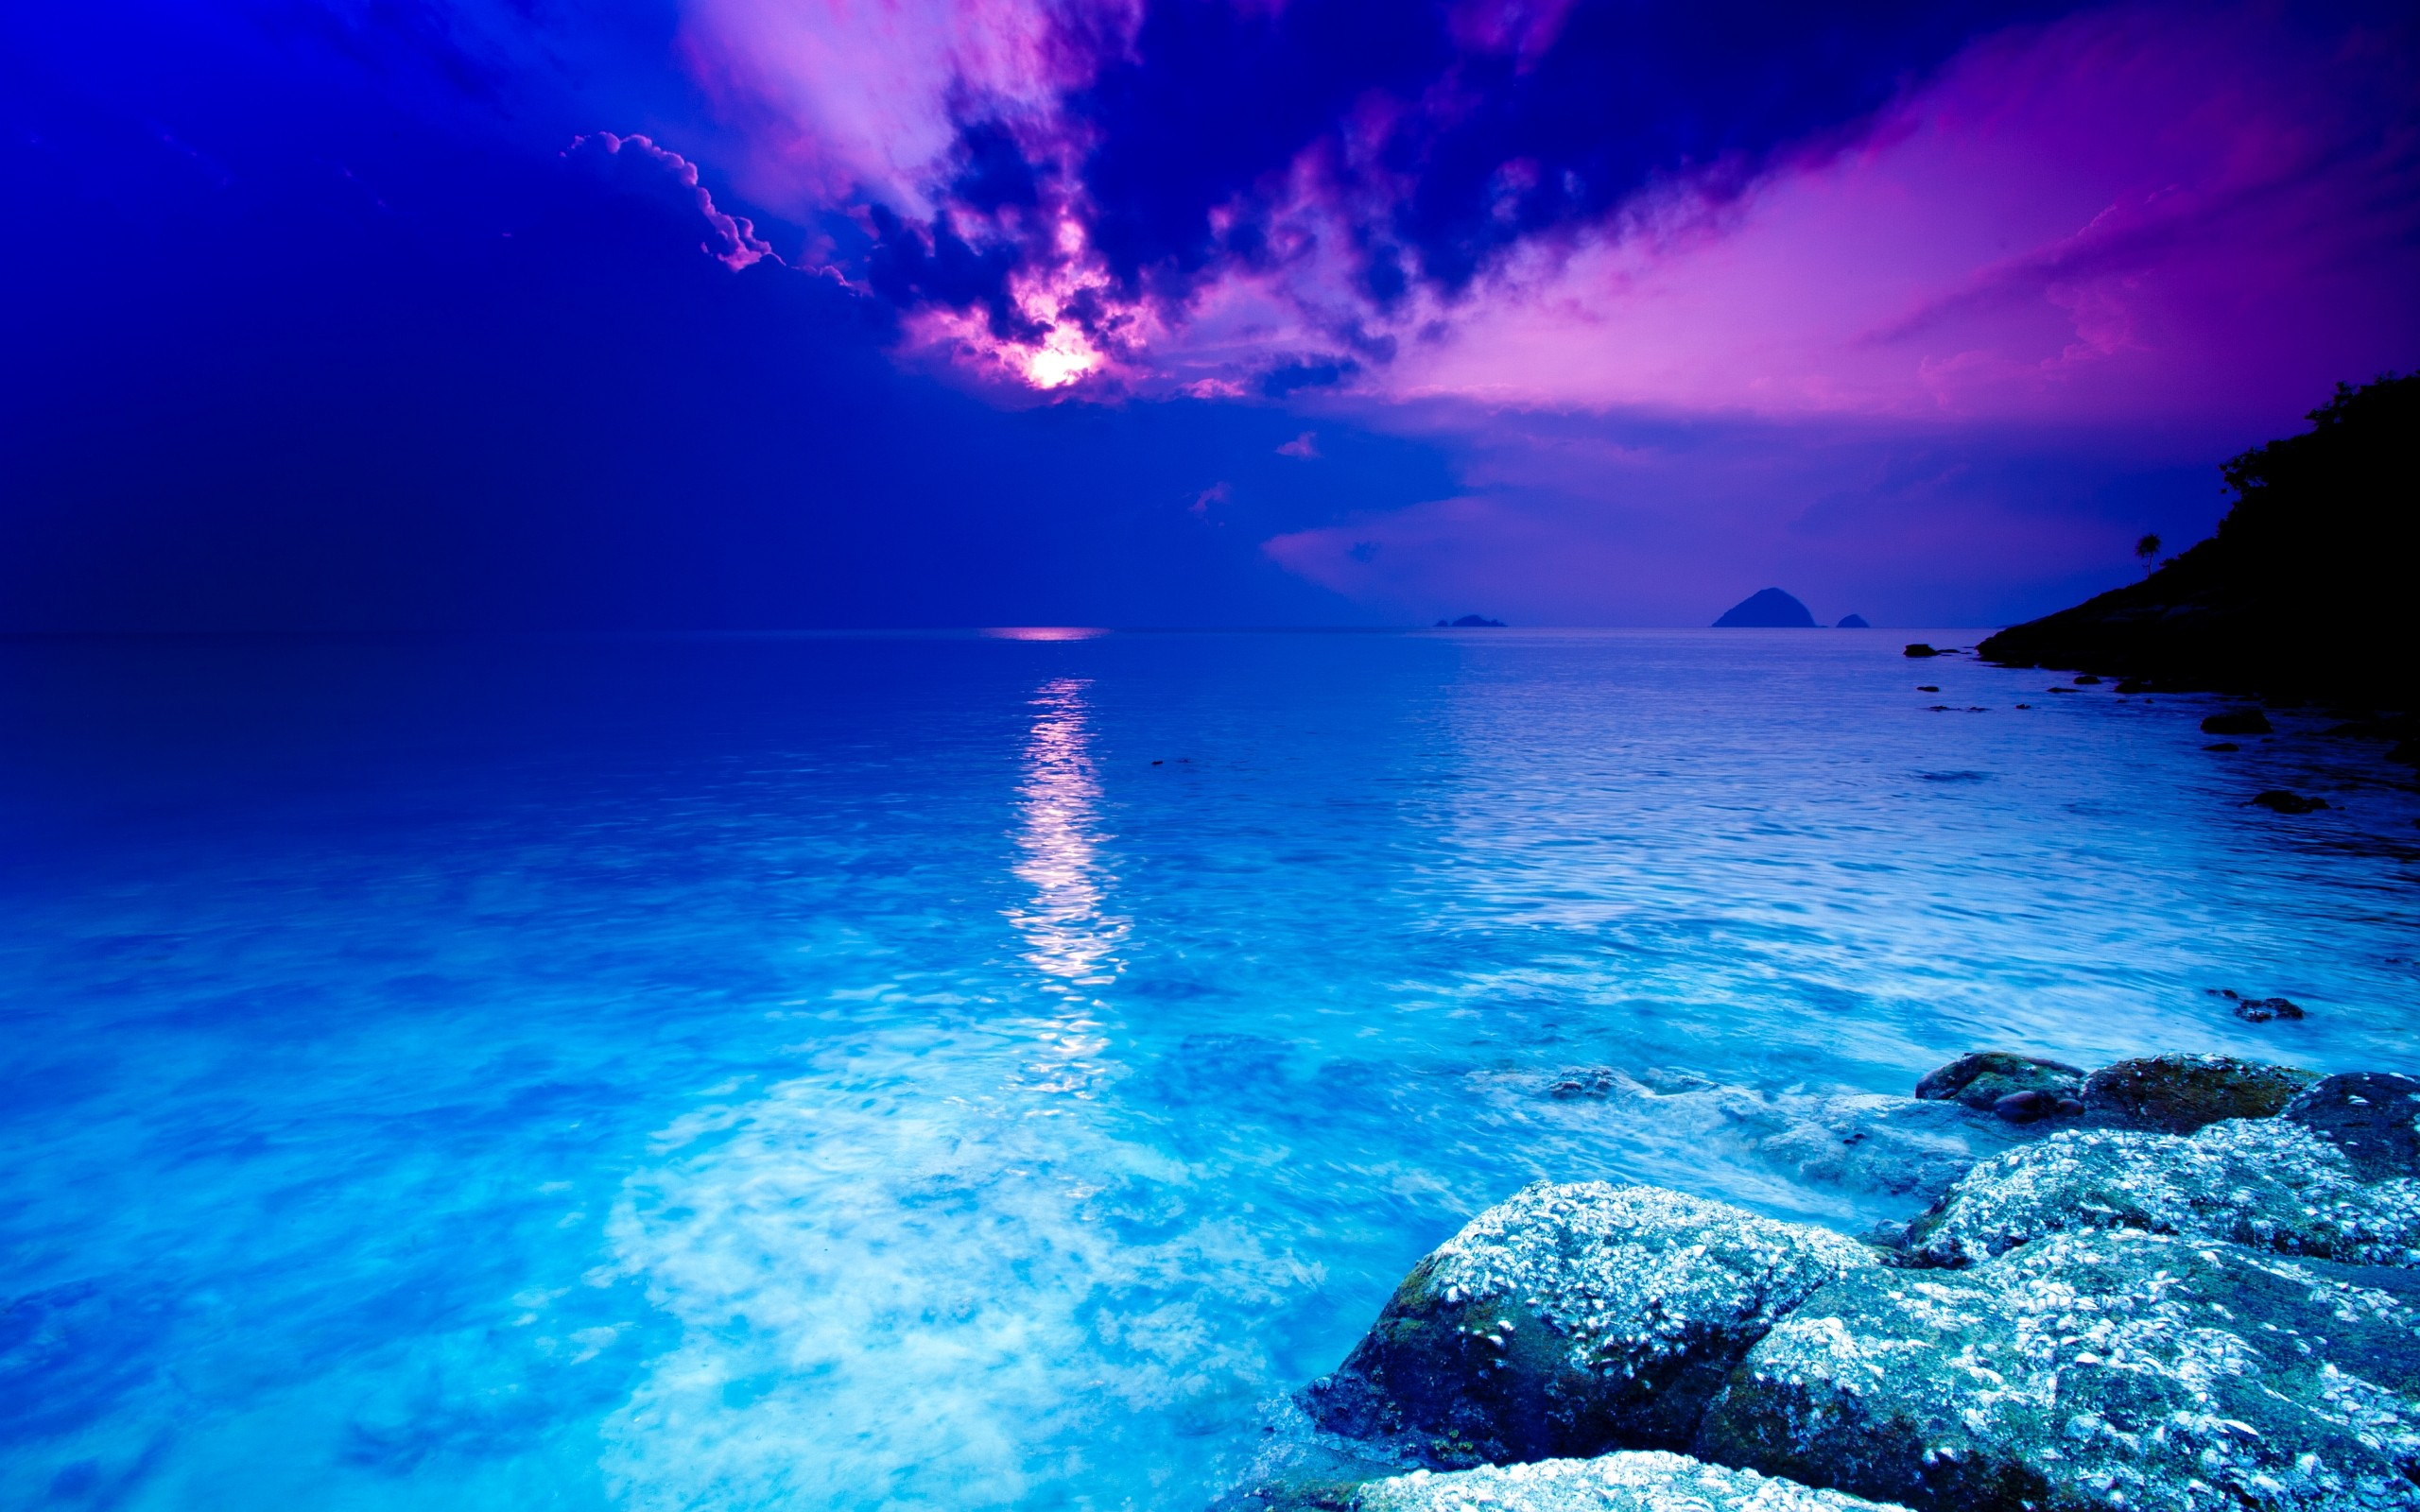 Blue Sea Wallpaper 2560x1600 Blue, Sea, Crystal, Thailand